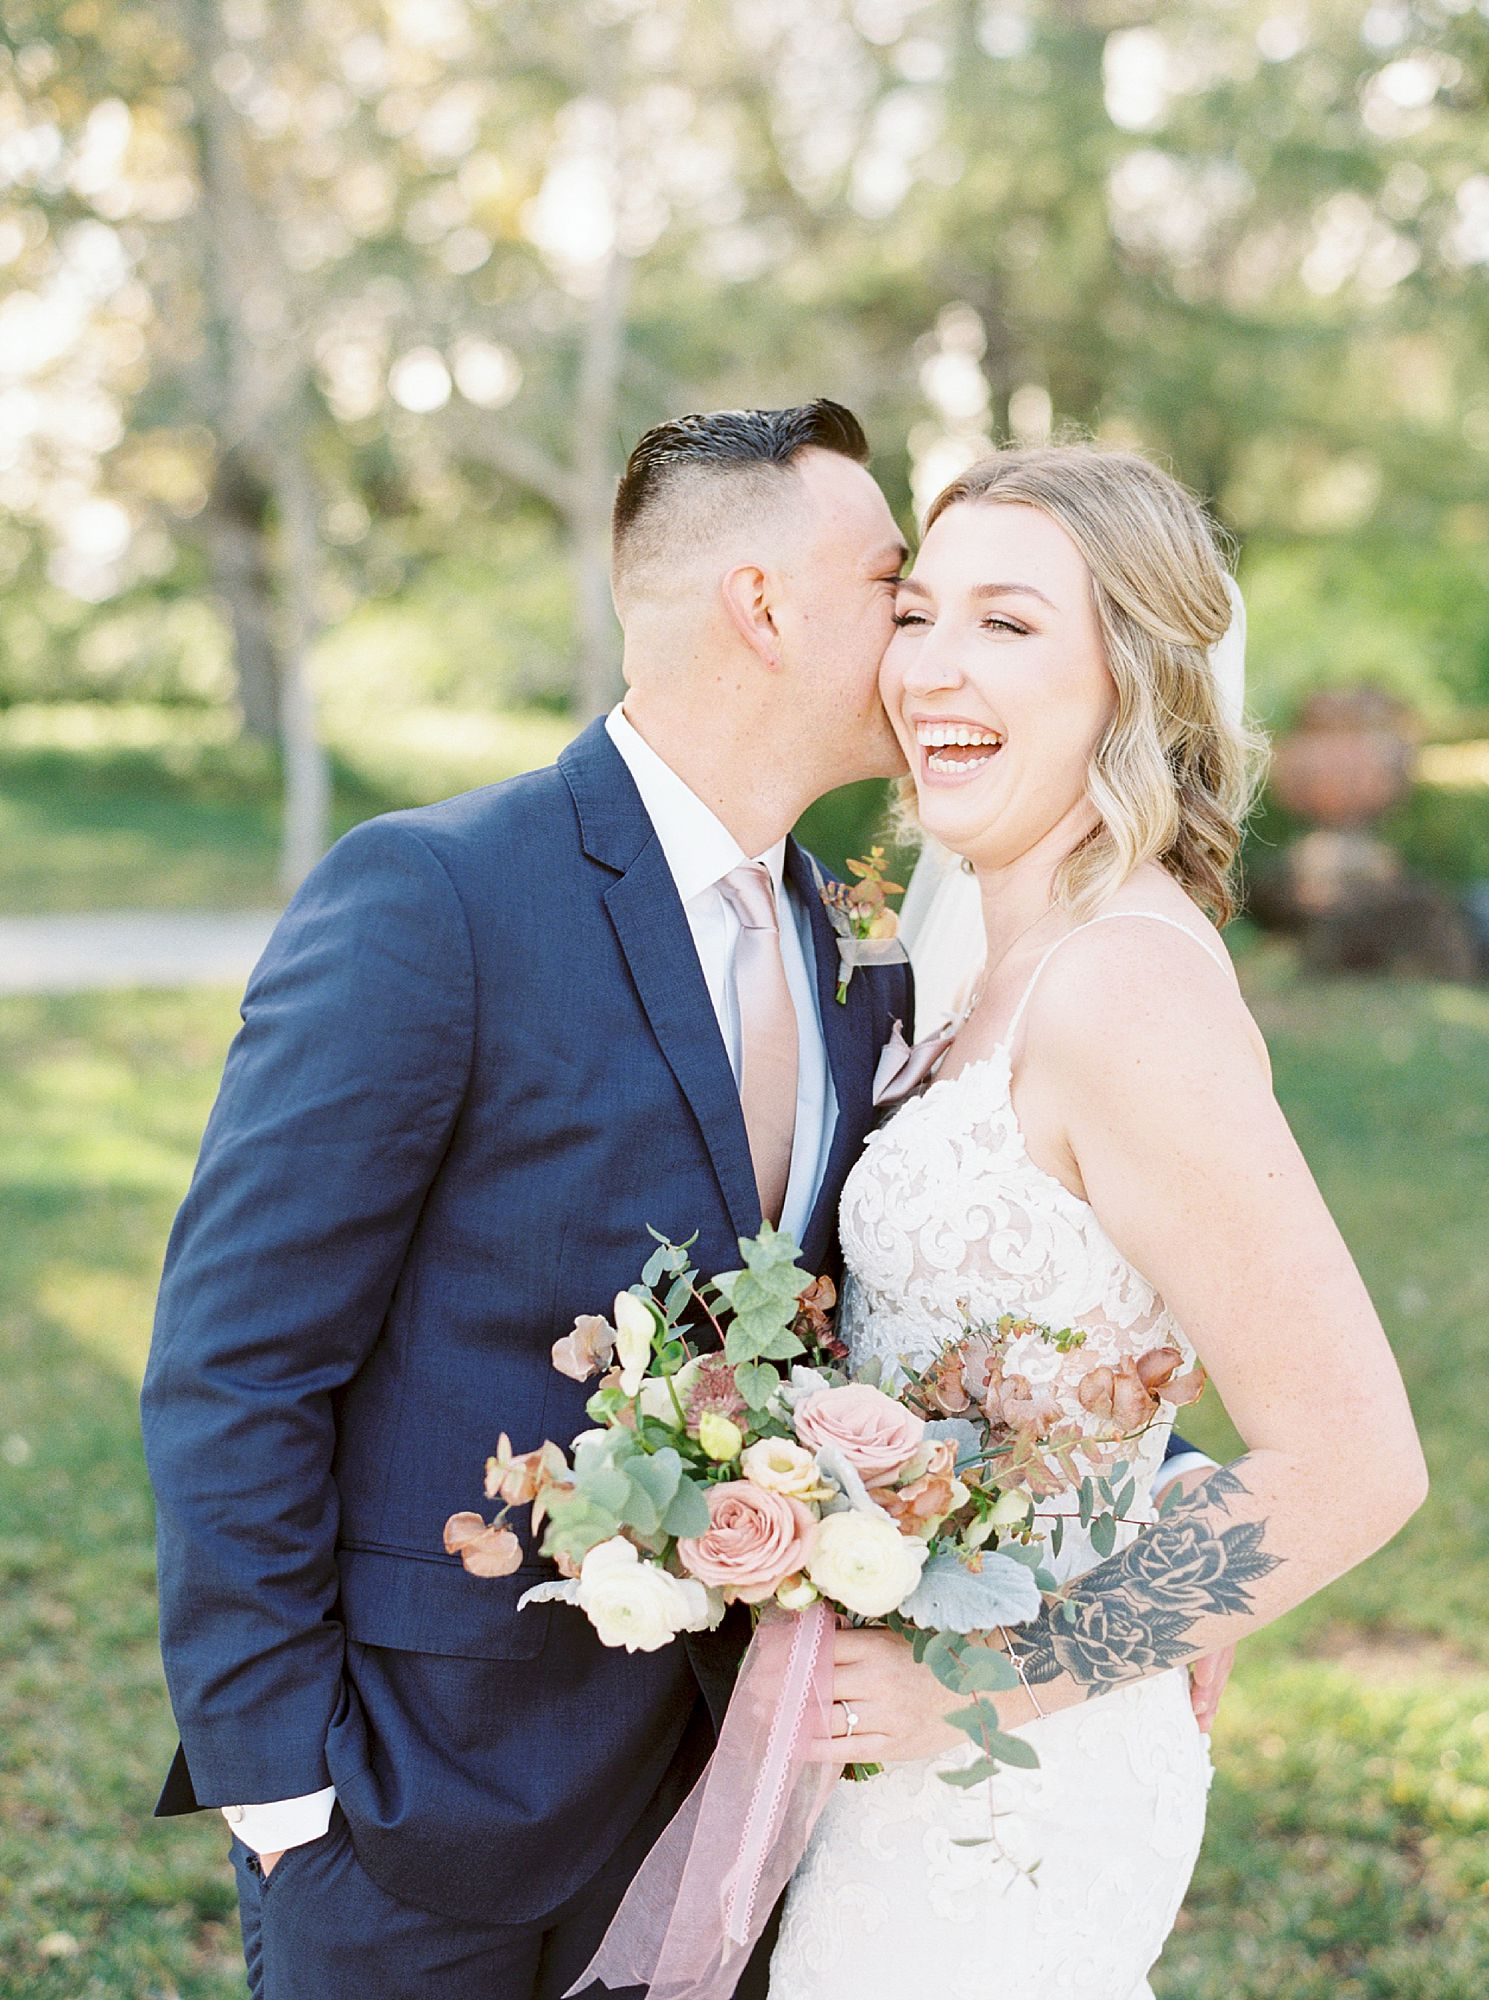 Inn at Park Winters Wedding - Lindsay and Shane - Ashley Baumgartner - Park Winters Wedding Photographer - Sacramento Wedding Photographer_0020.jpg